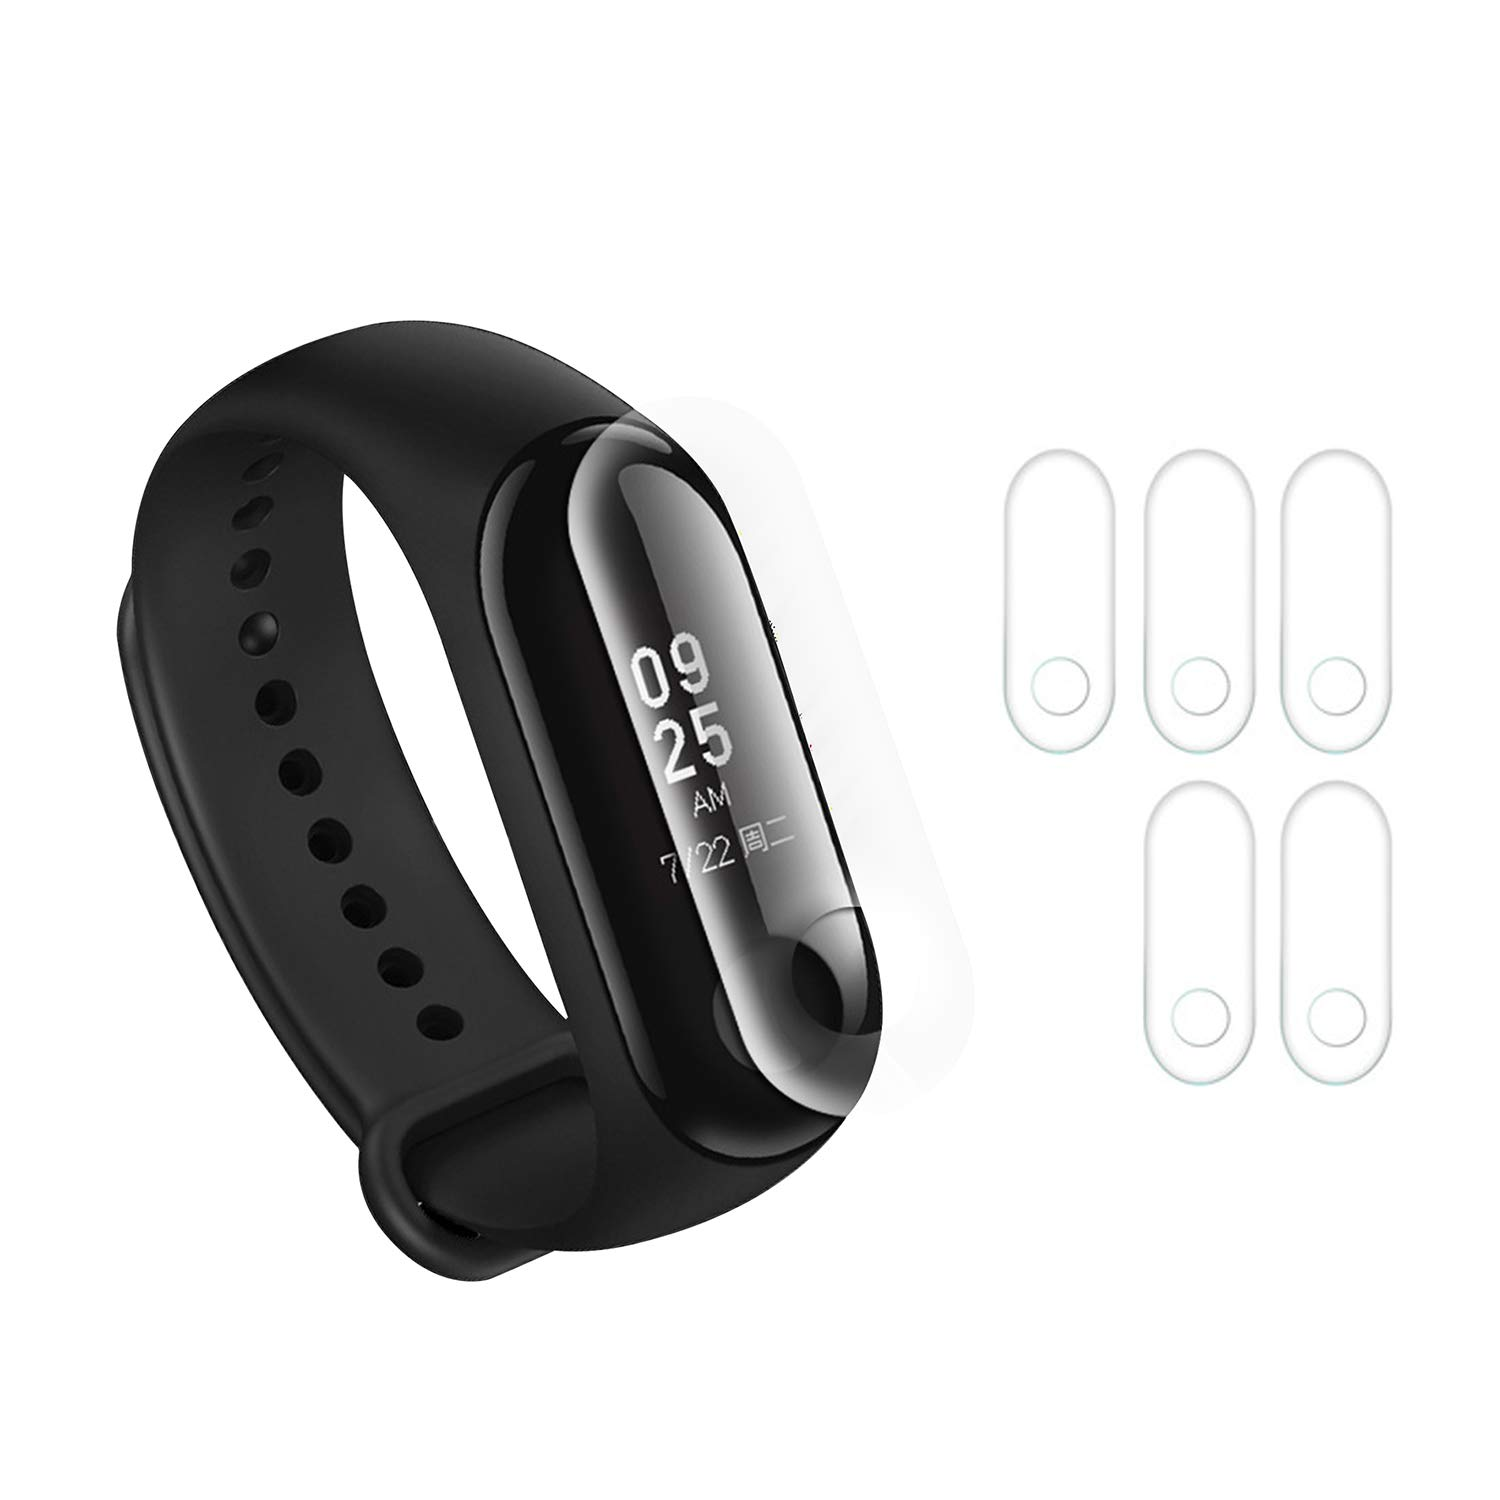 Screen Protector Compatible with Xiaomi mi Band 2 Smart Bracelet Wristband, Not Tempered Glass Protective Films 5PCS (for MI Band 2)